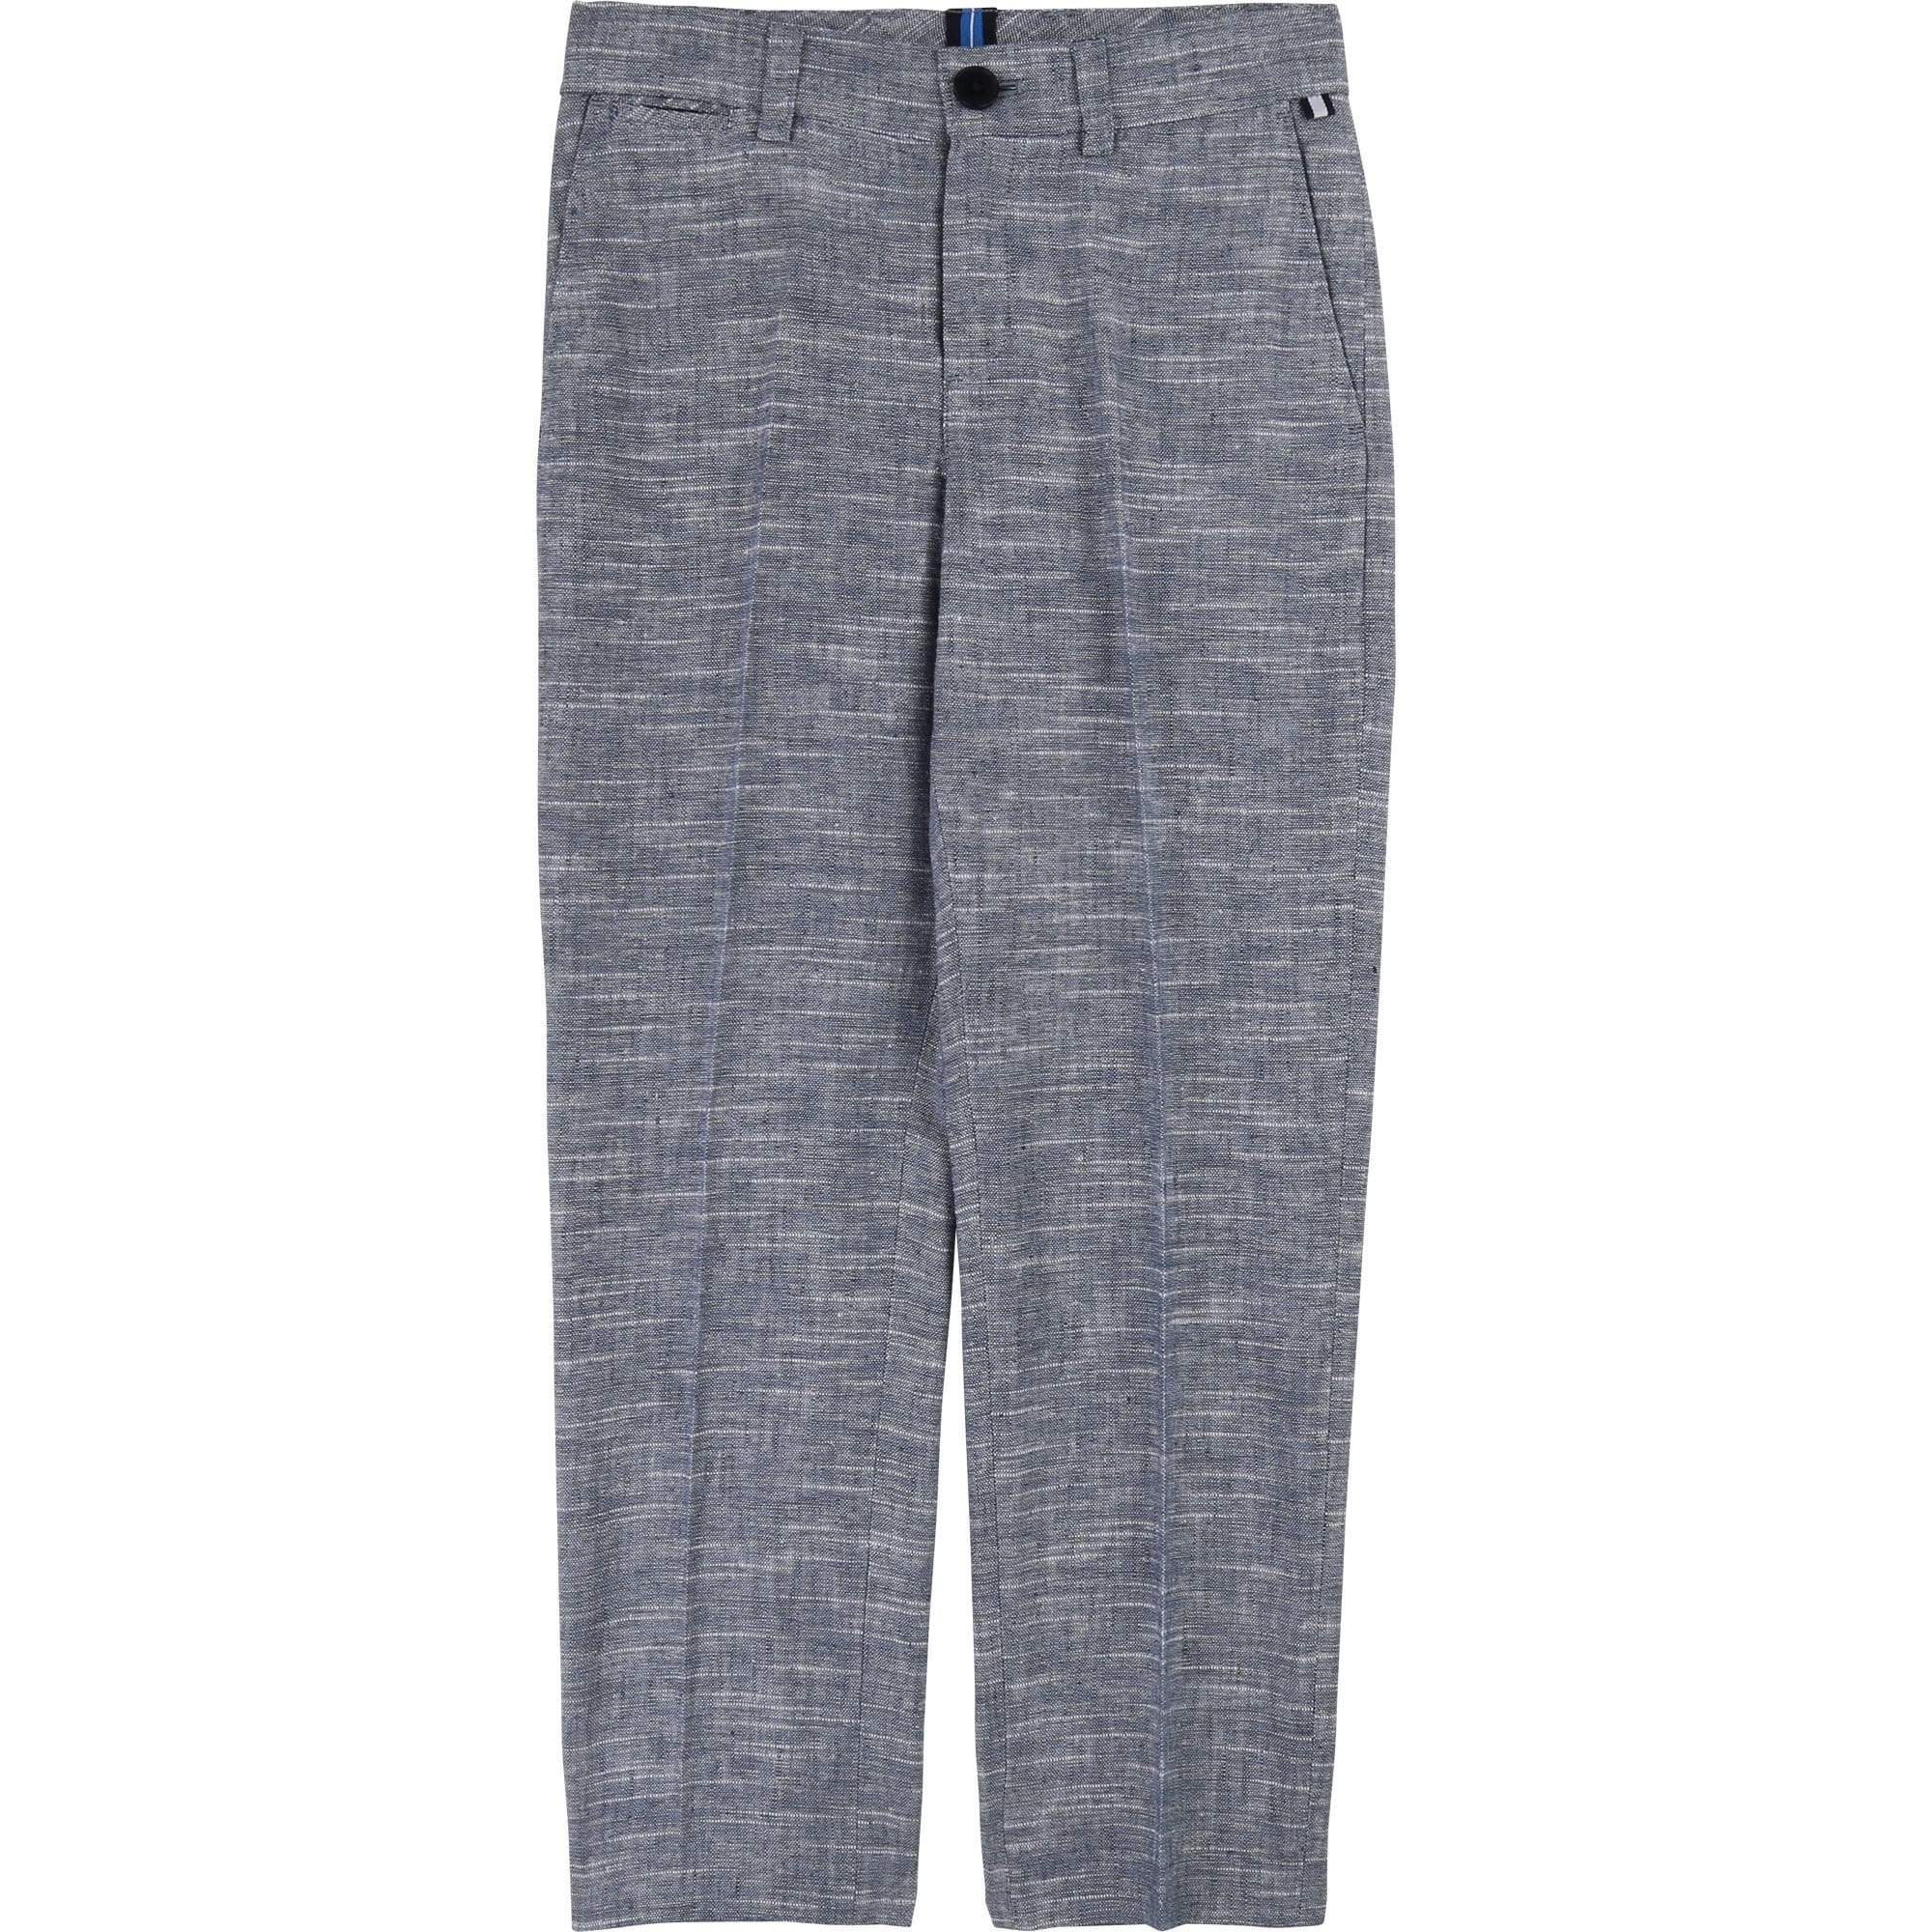 Hugo Boss Suit Blue Trouser